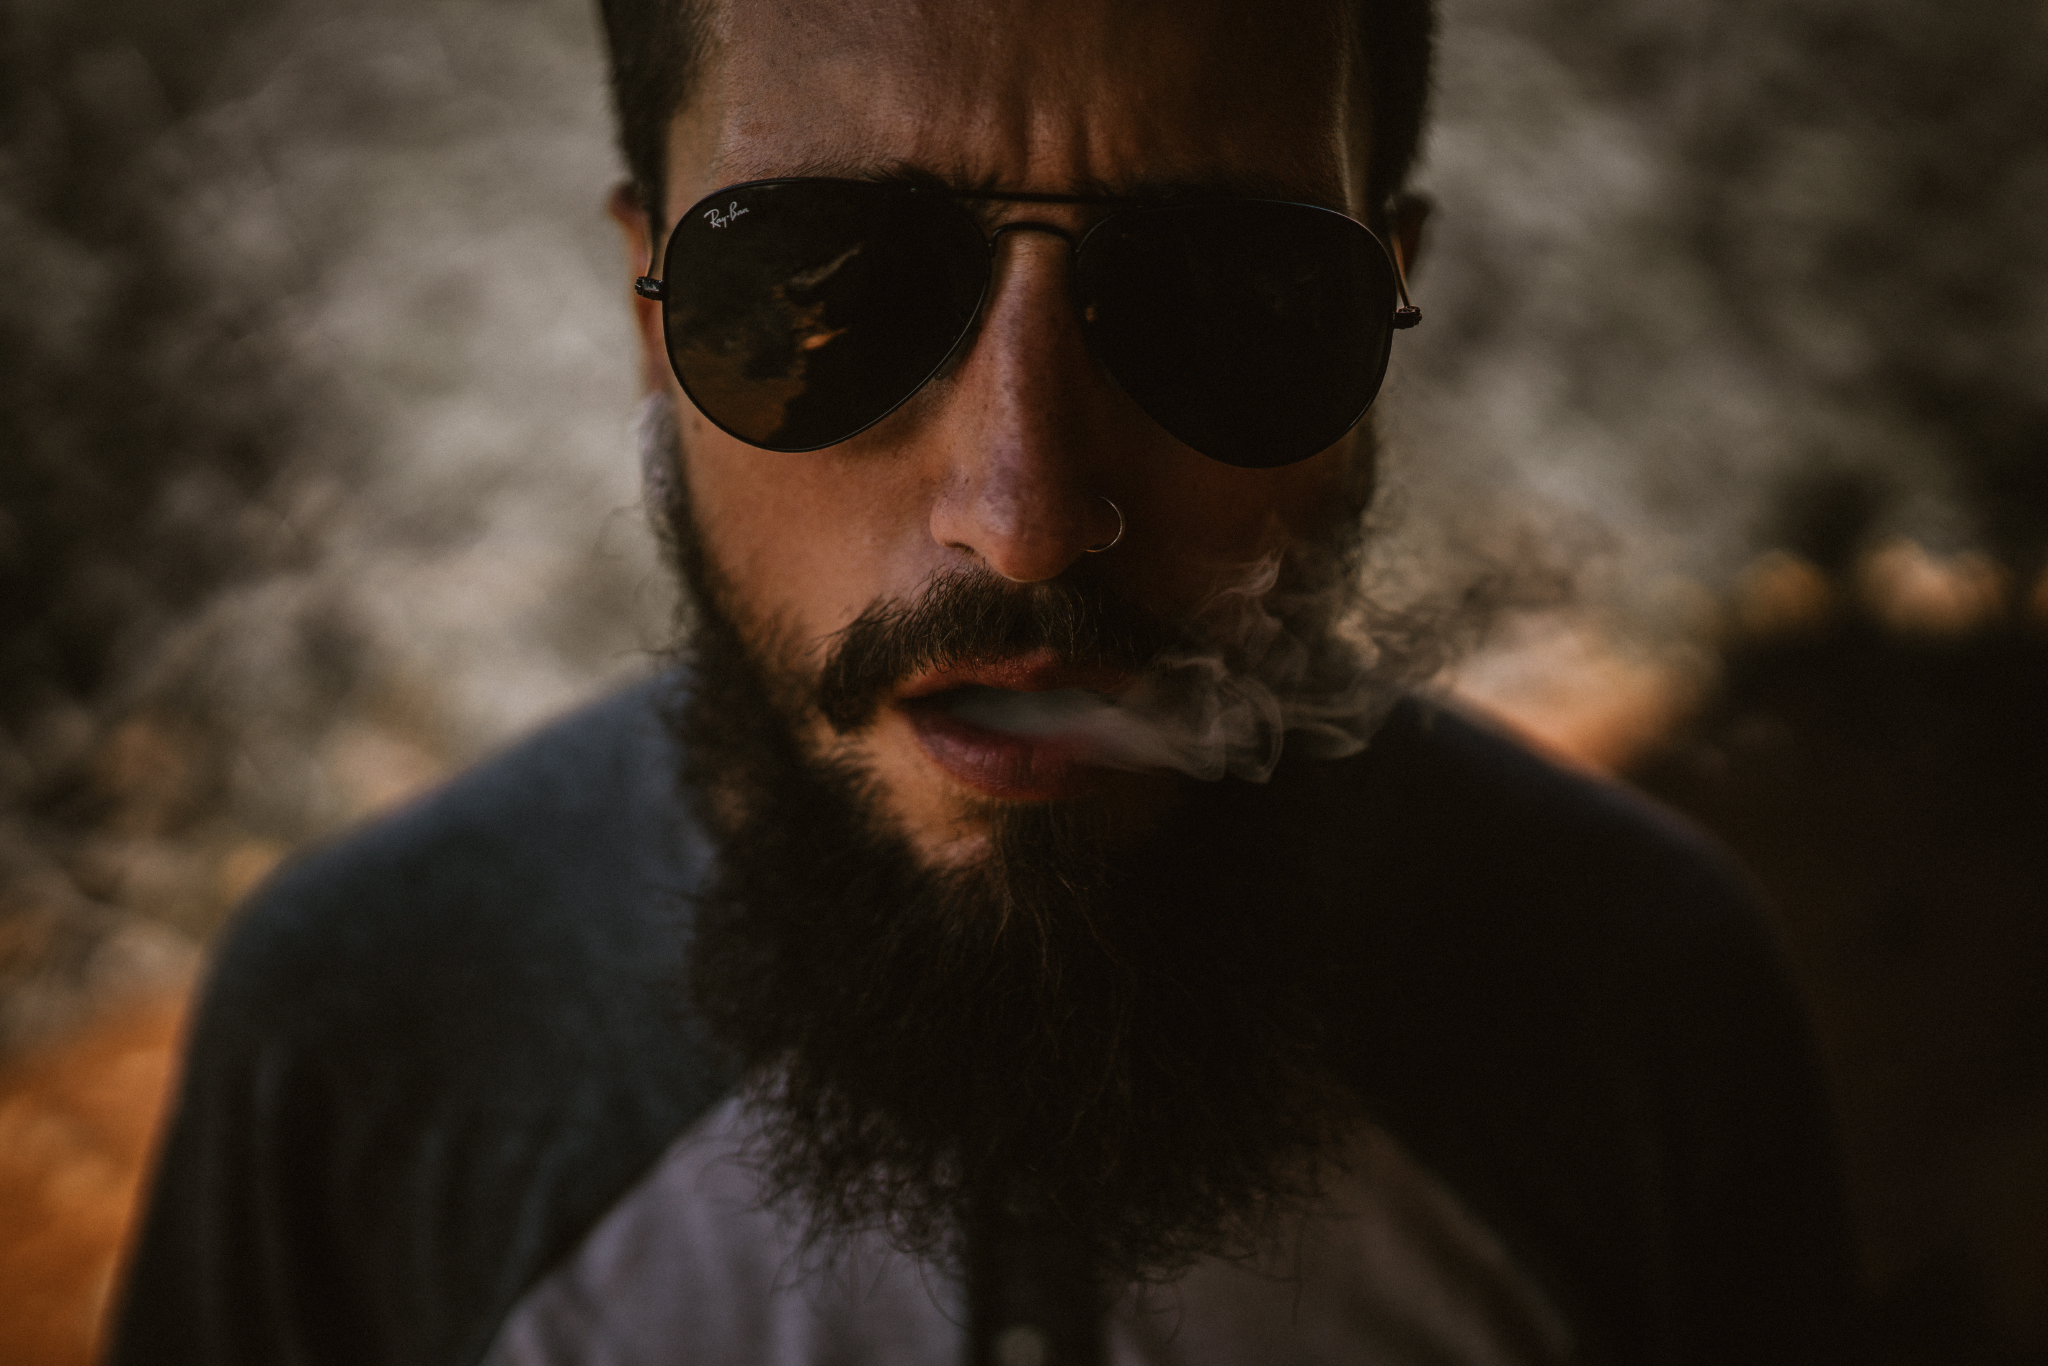 san diego wedding   photographer | bearded man in shades blowing smoke out of his mouth